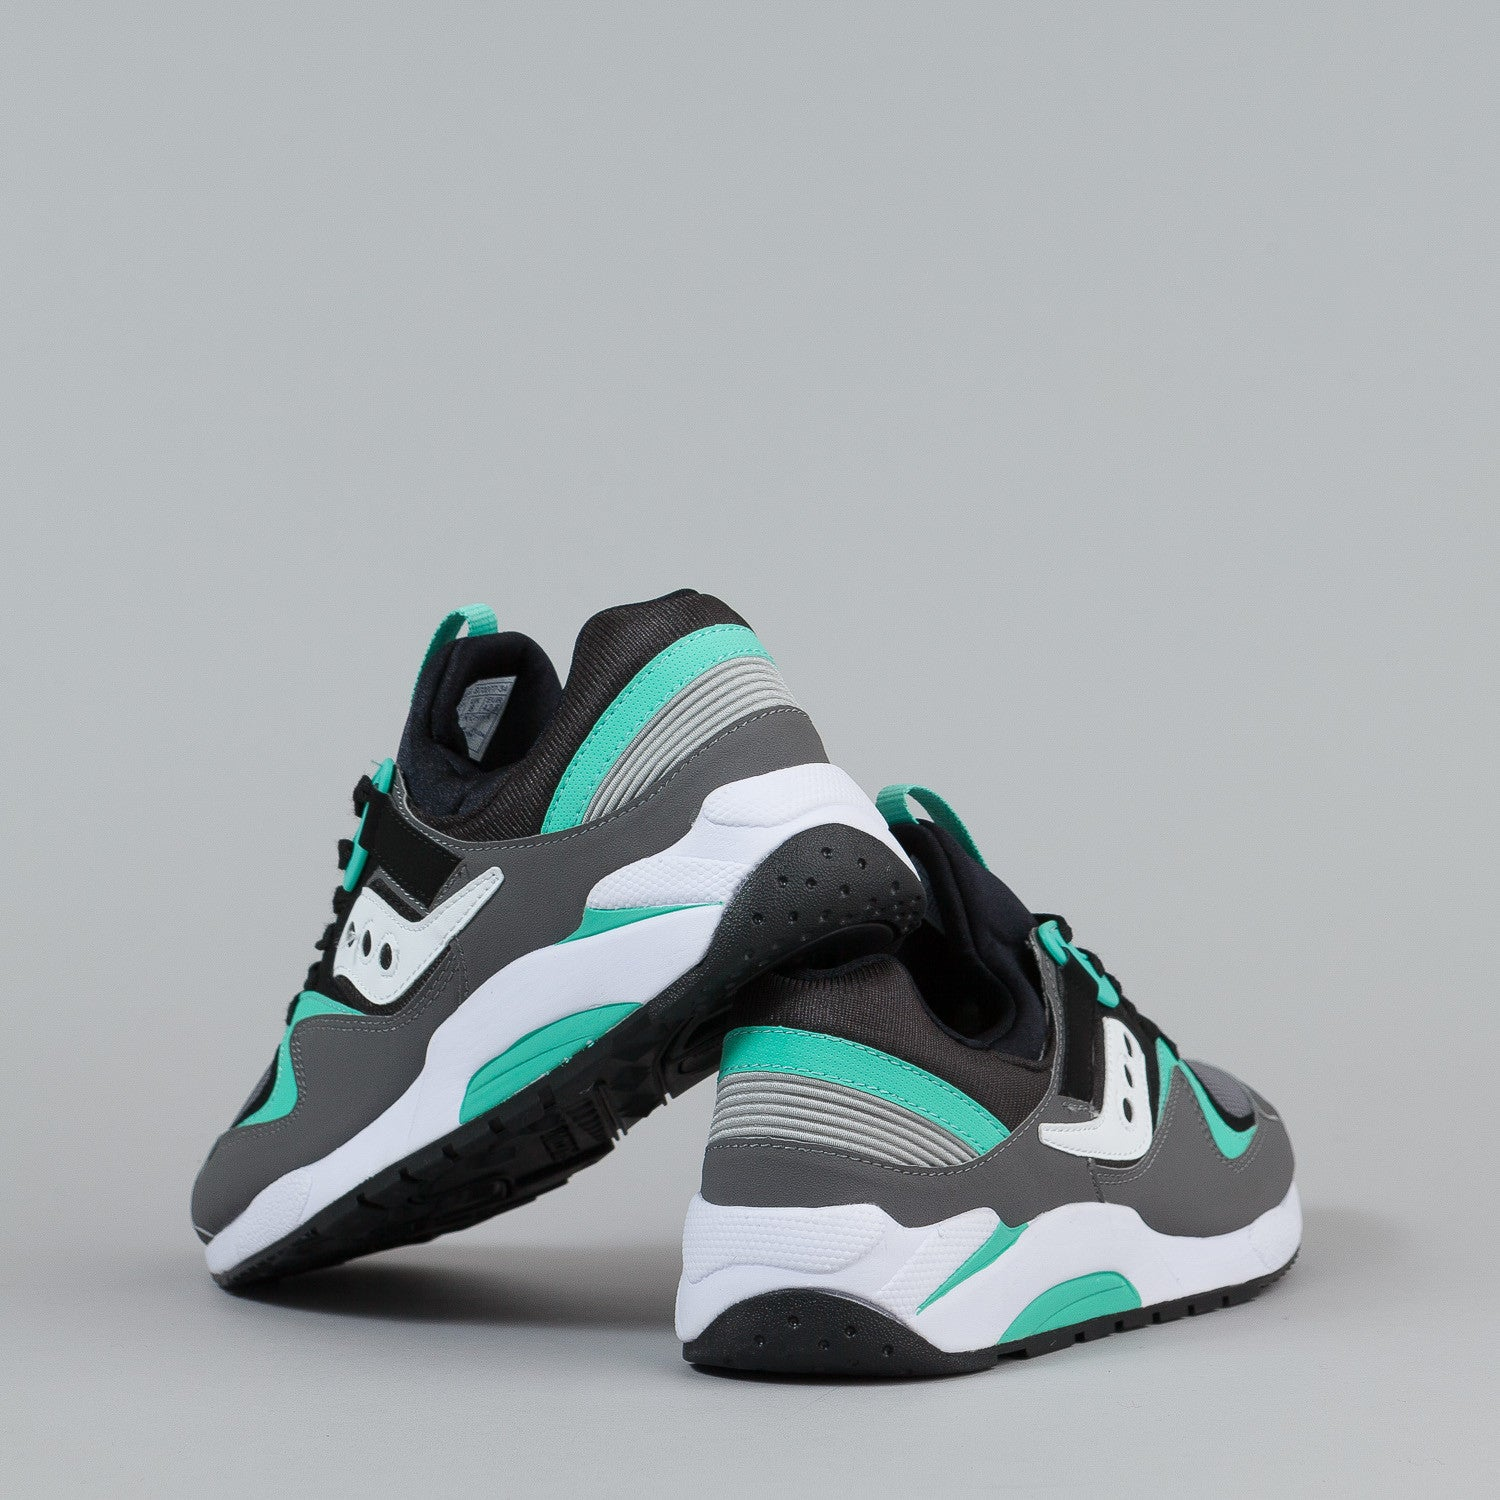 Saucony Grid 9000 Shoes - Grey / Black / Mint